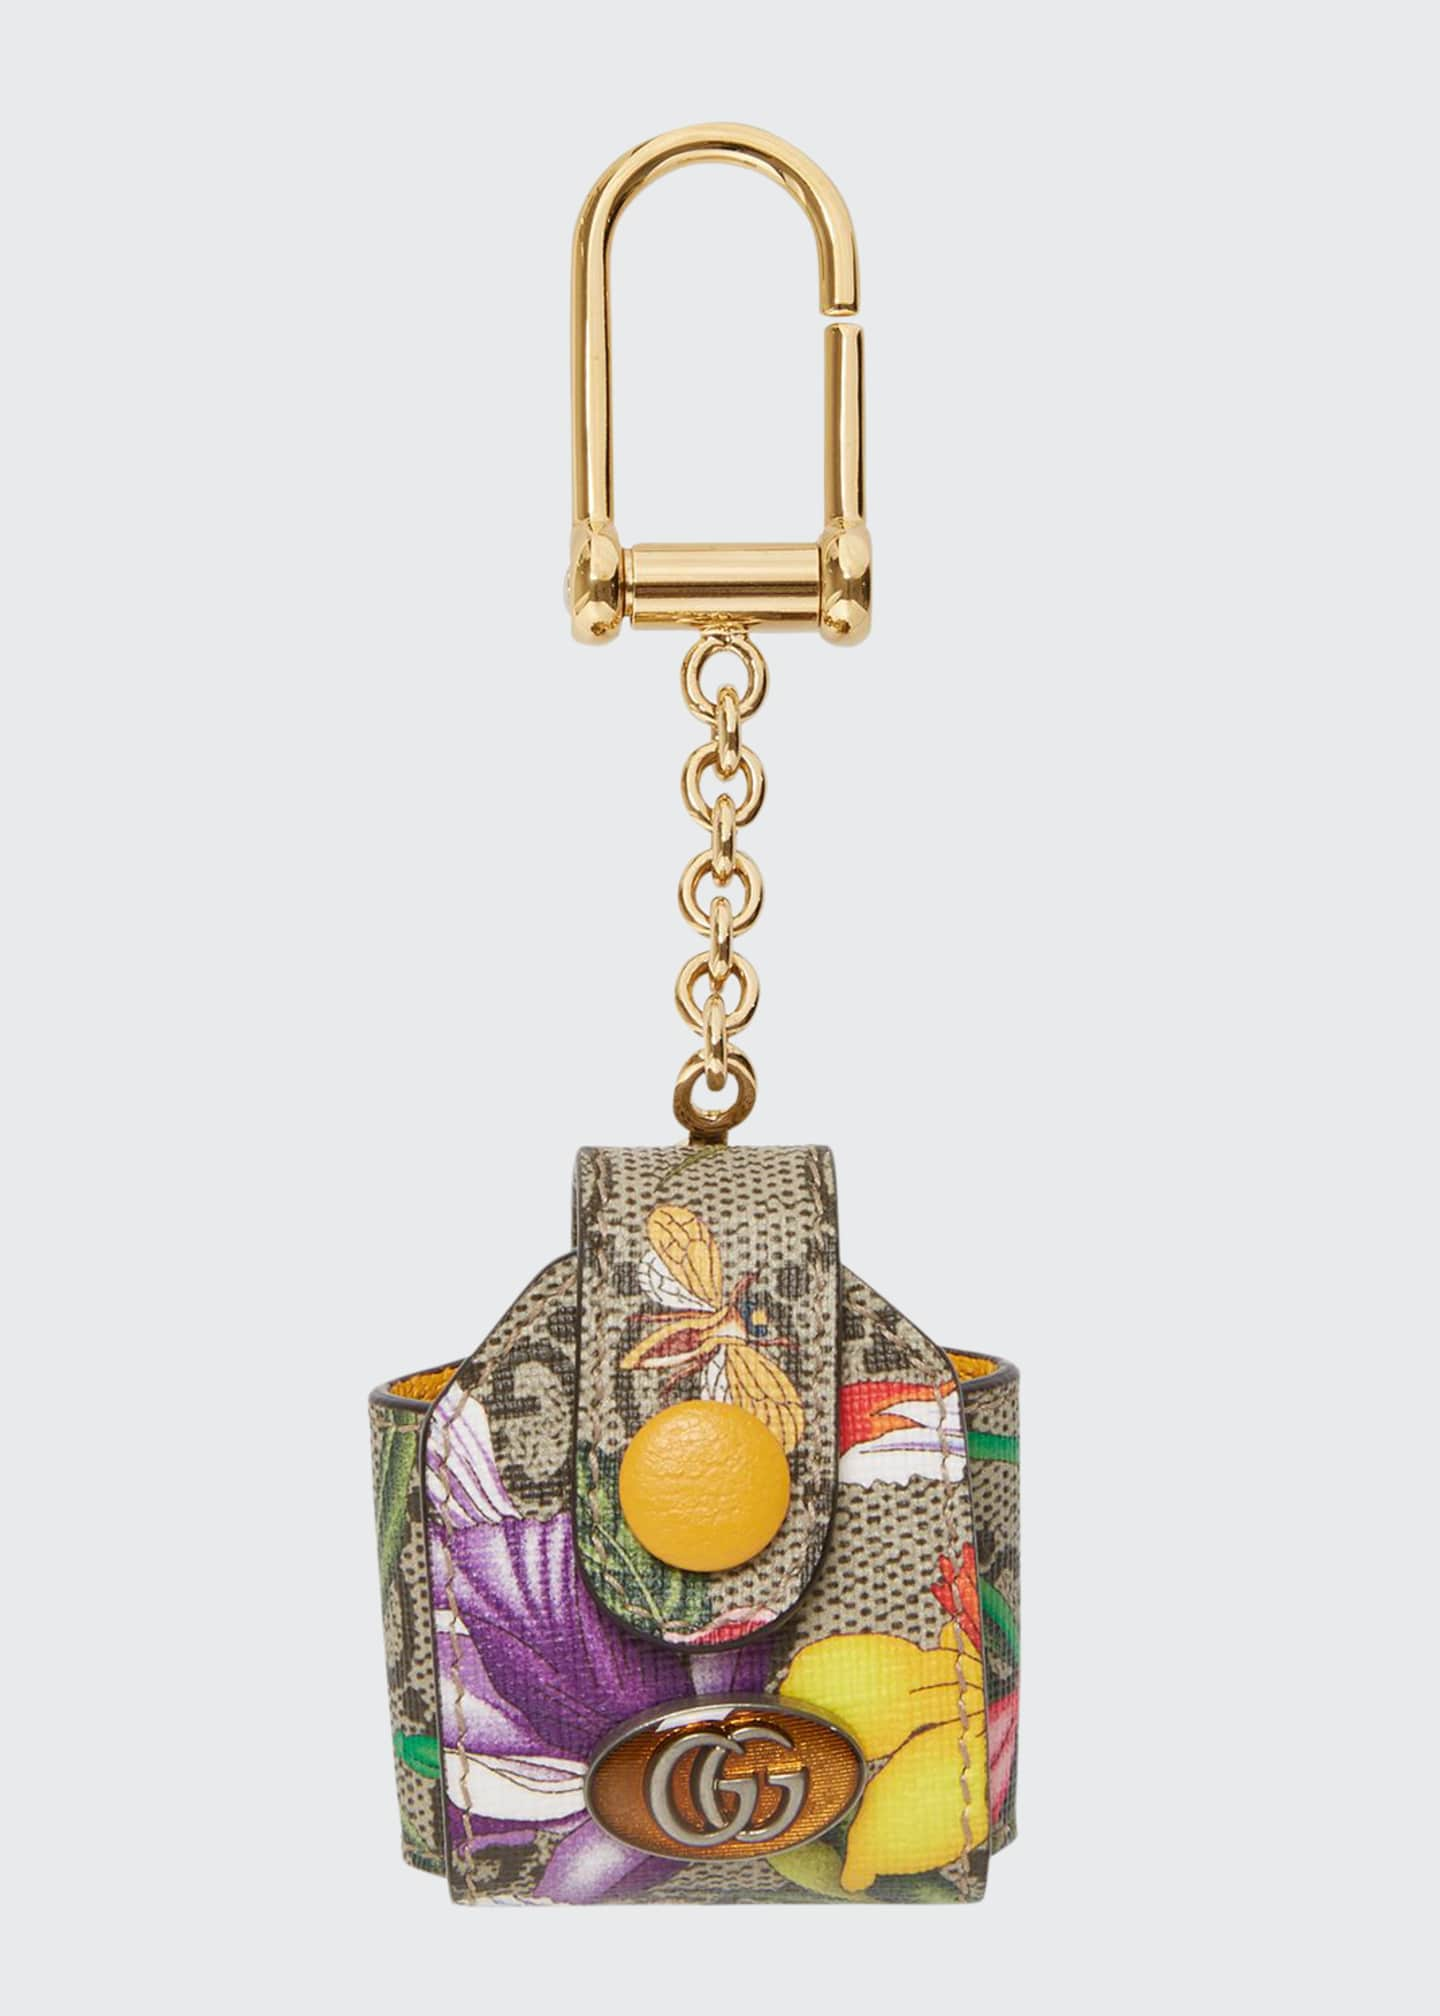 Gucci Ophidia GG Flora AirPods Keychain Case